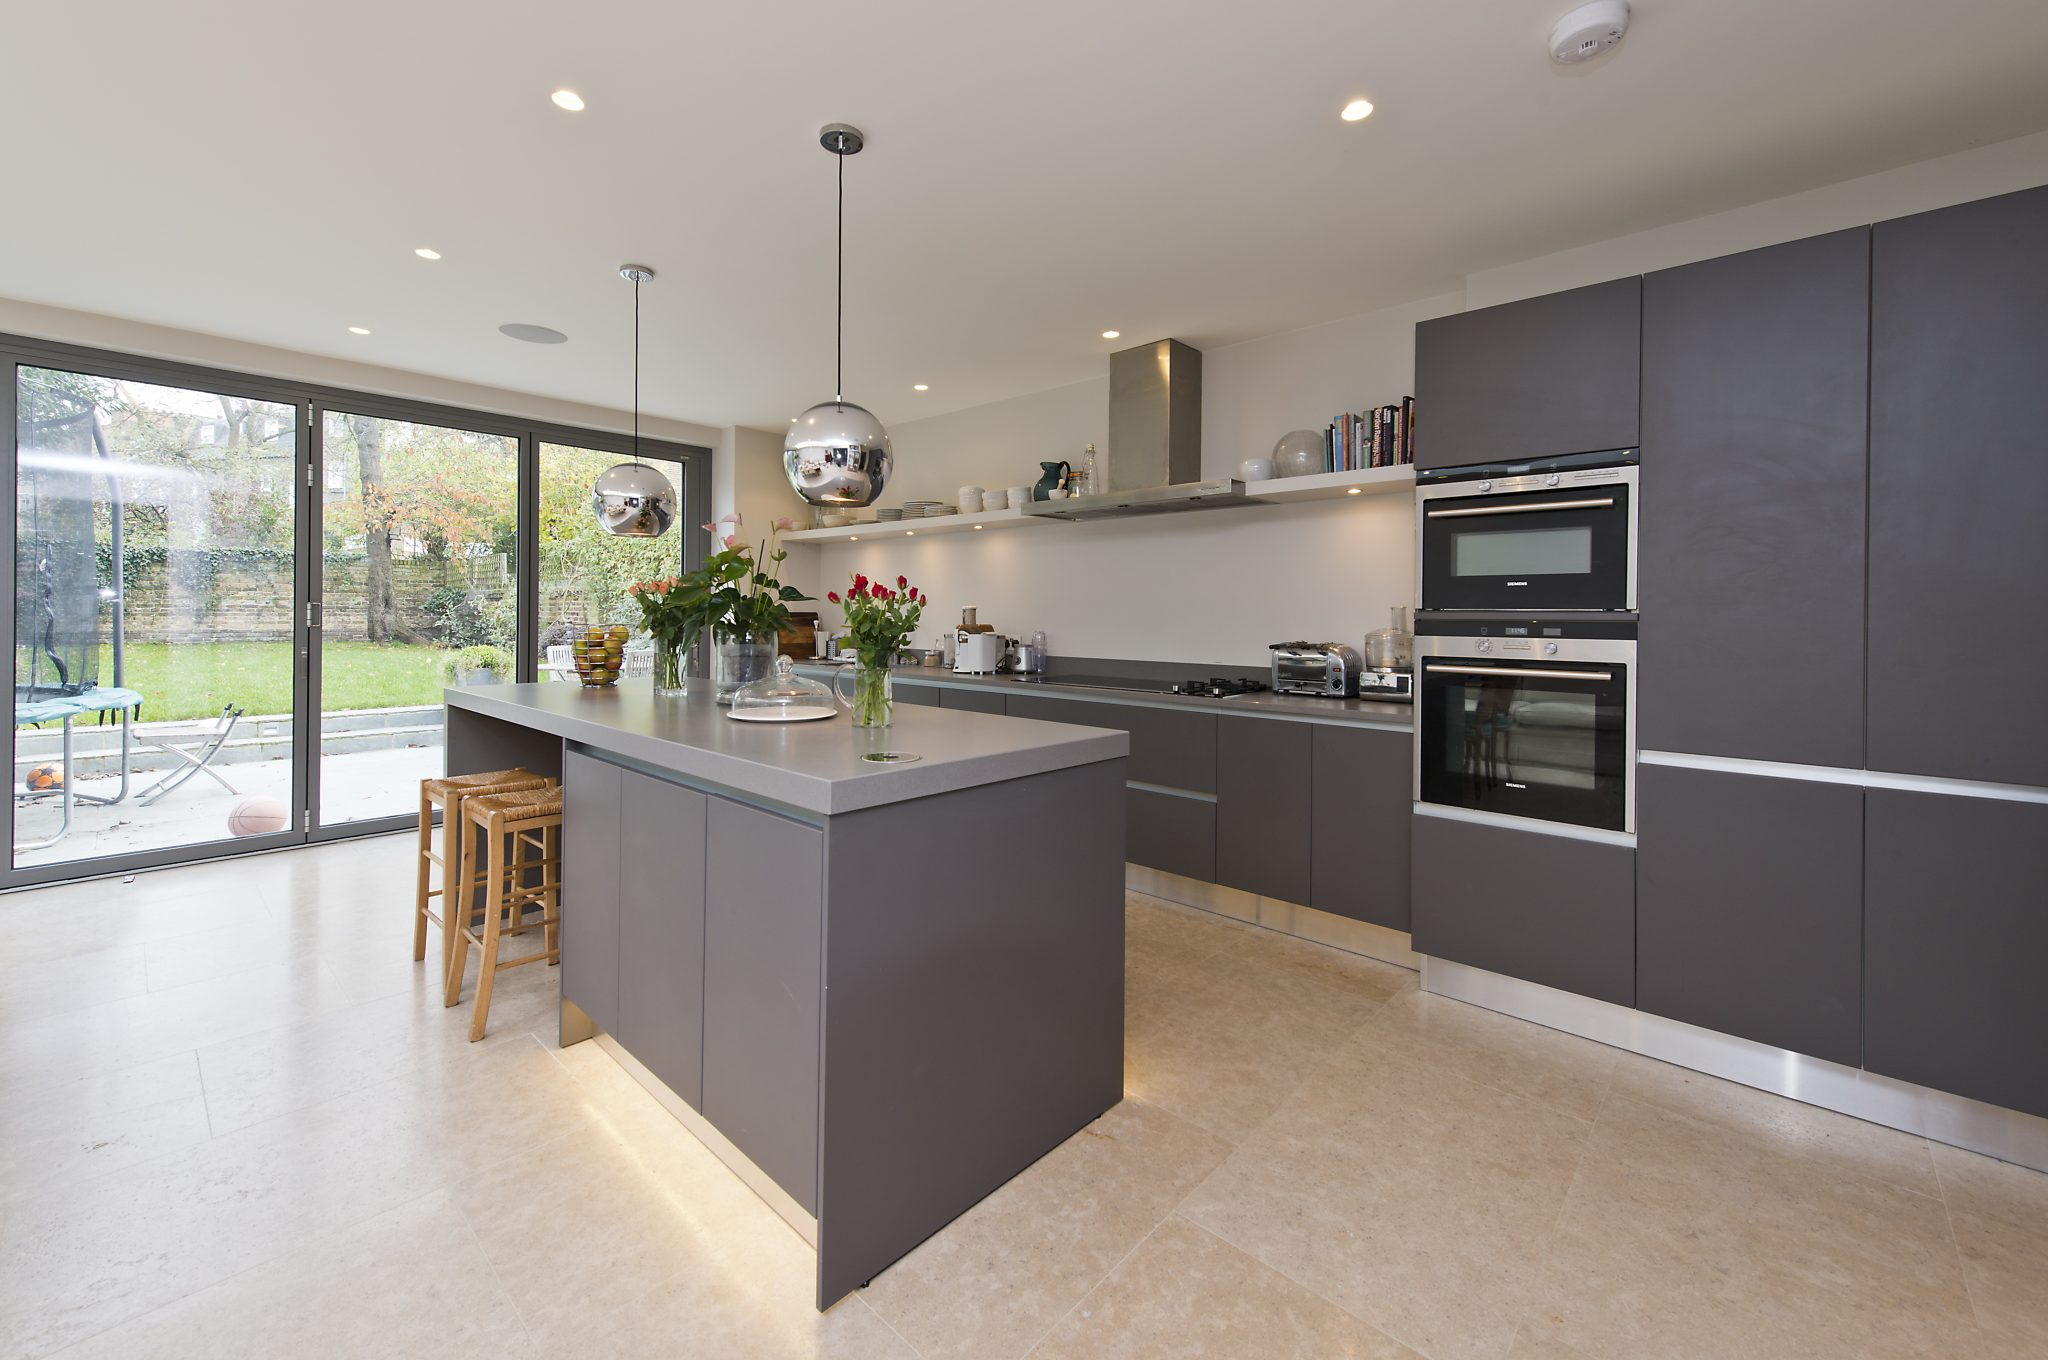 About West London Kitchens